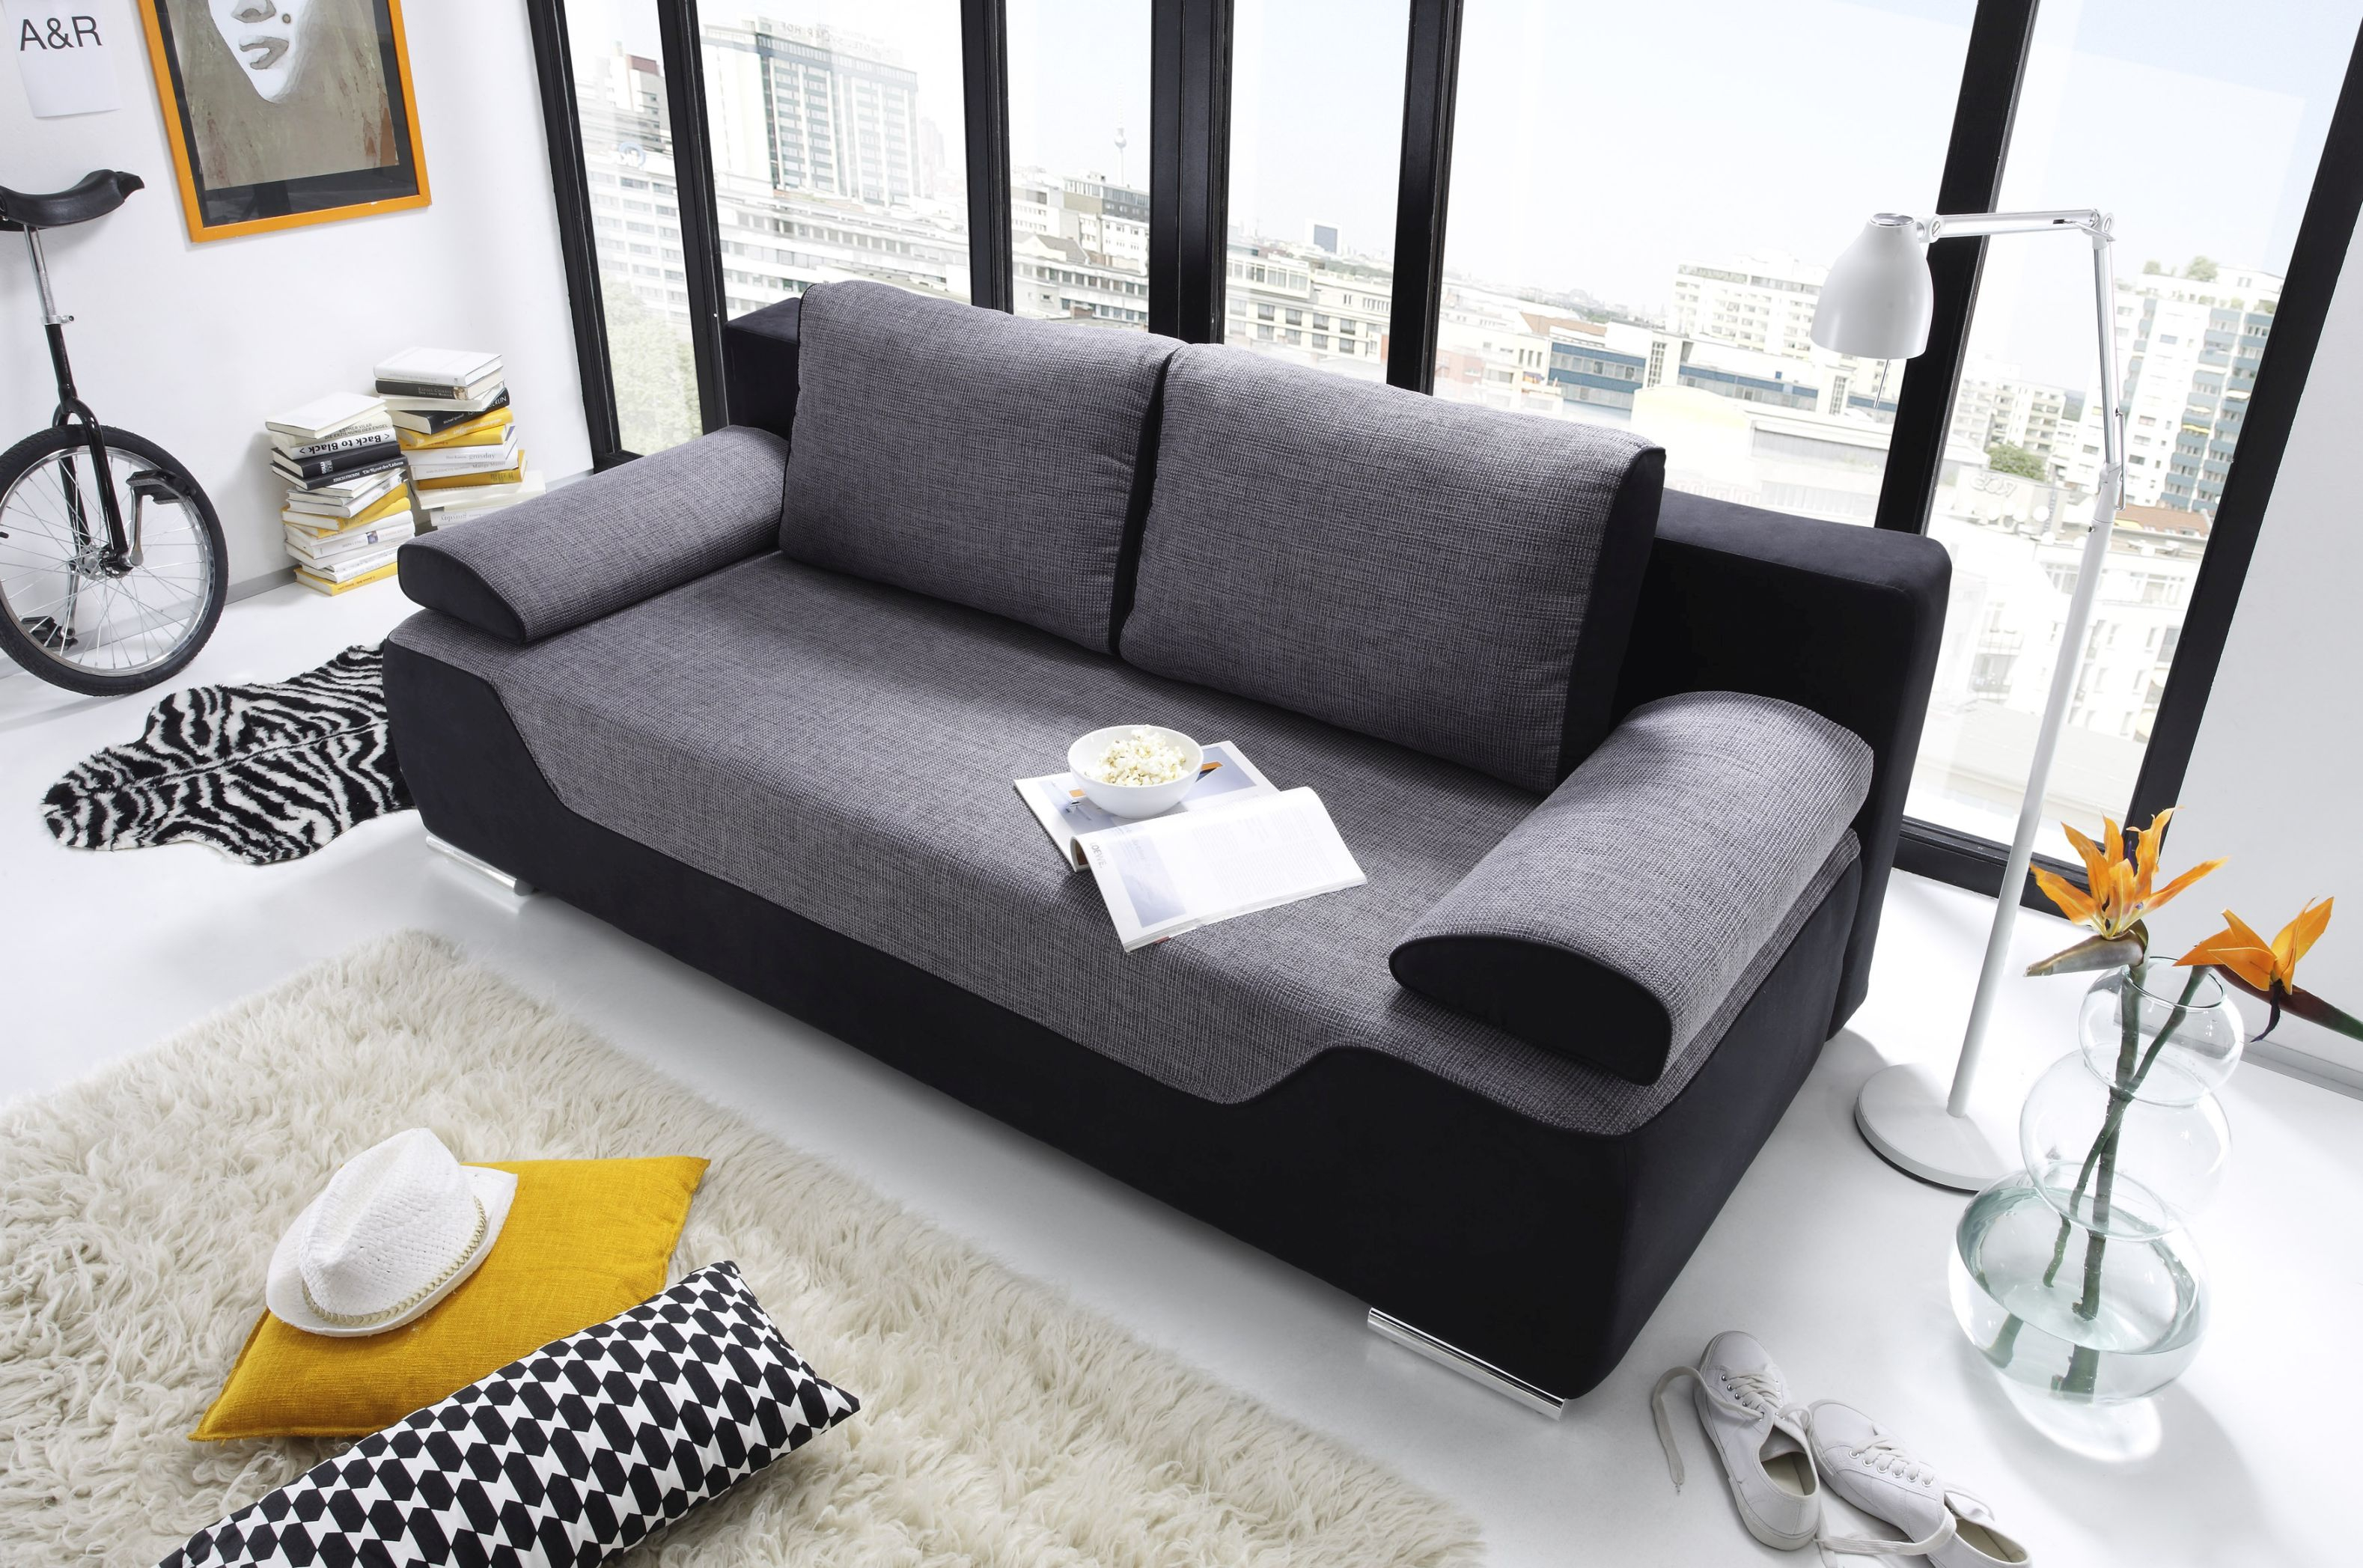 couch schlafsofa sofabett funktionssofa ausziehbar schwarz 200 cm ebay. Black Bedroom Furniture Sets. Home Design Ideas